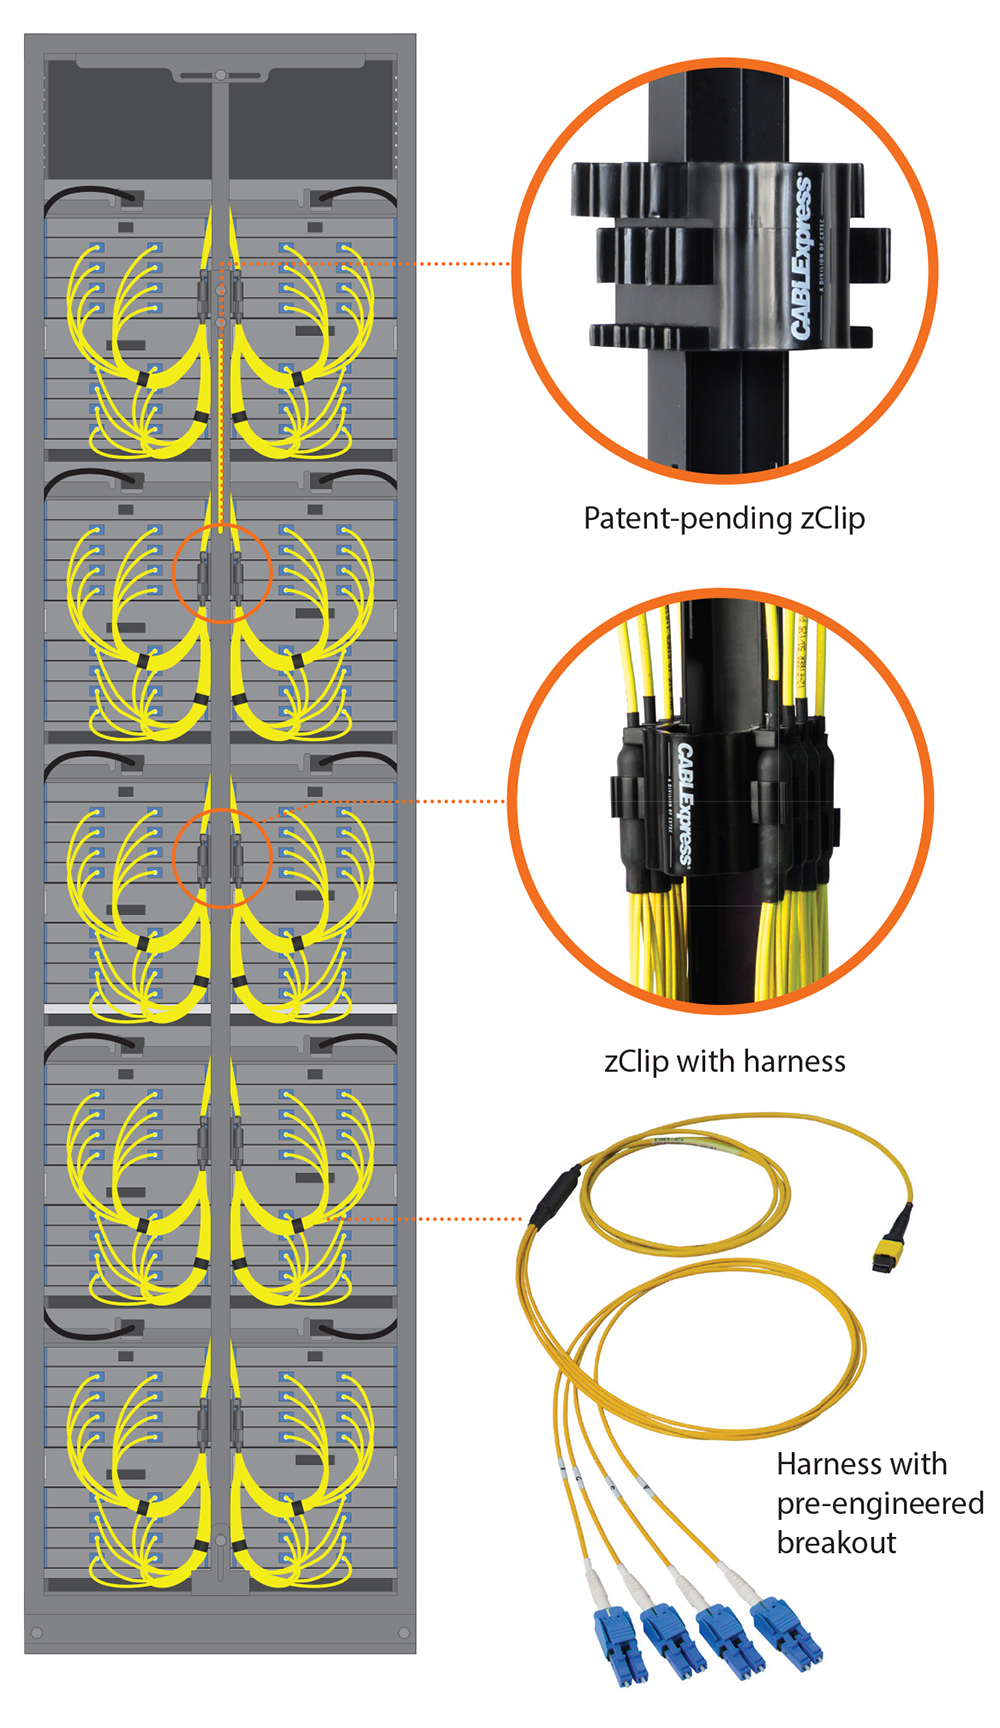 zClip harness solution, cabling for IBM z15